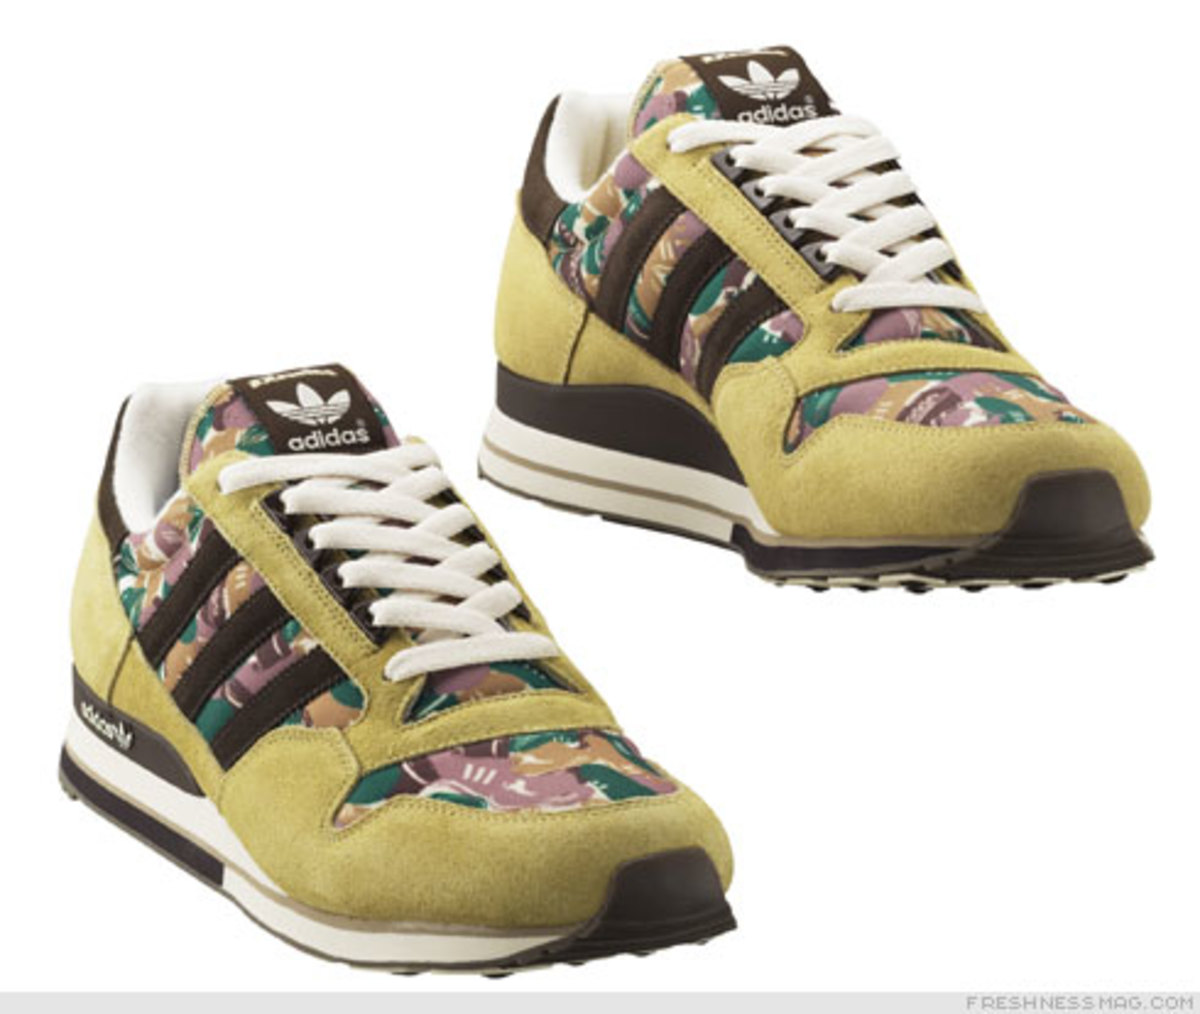 Freshness Feature: Adidas ZX Family - Camo Pack - 15